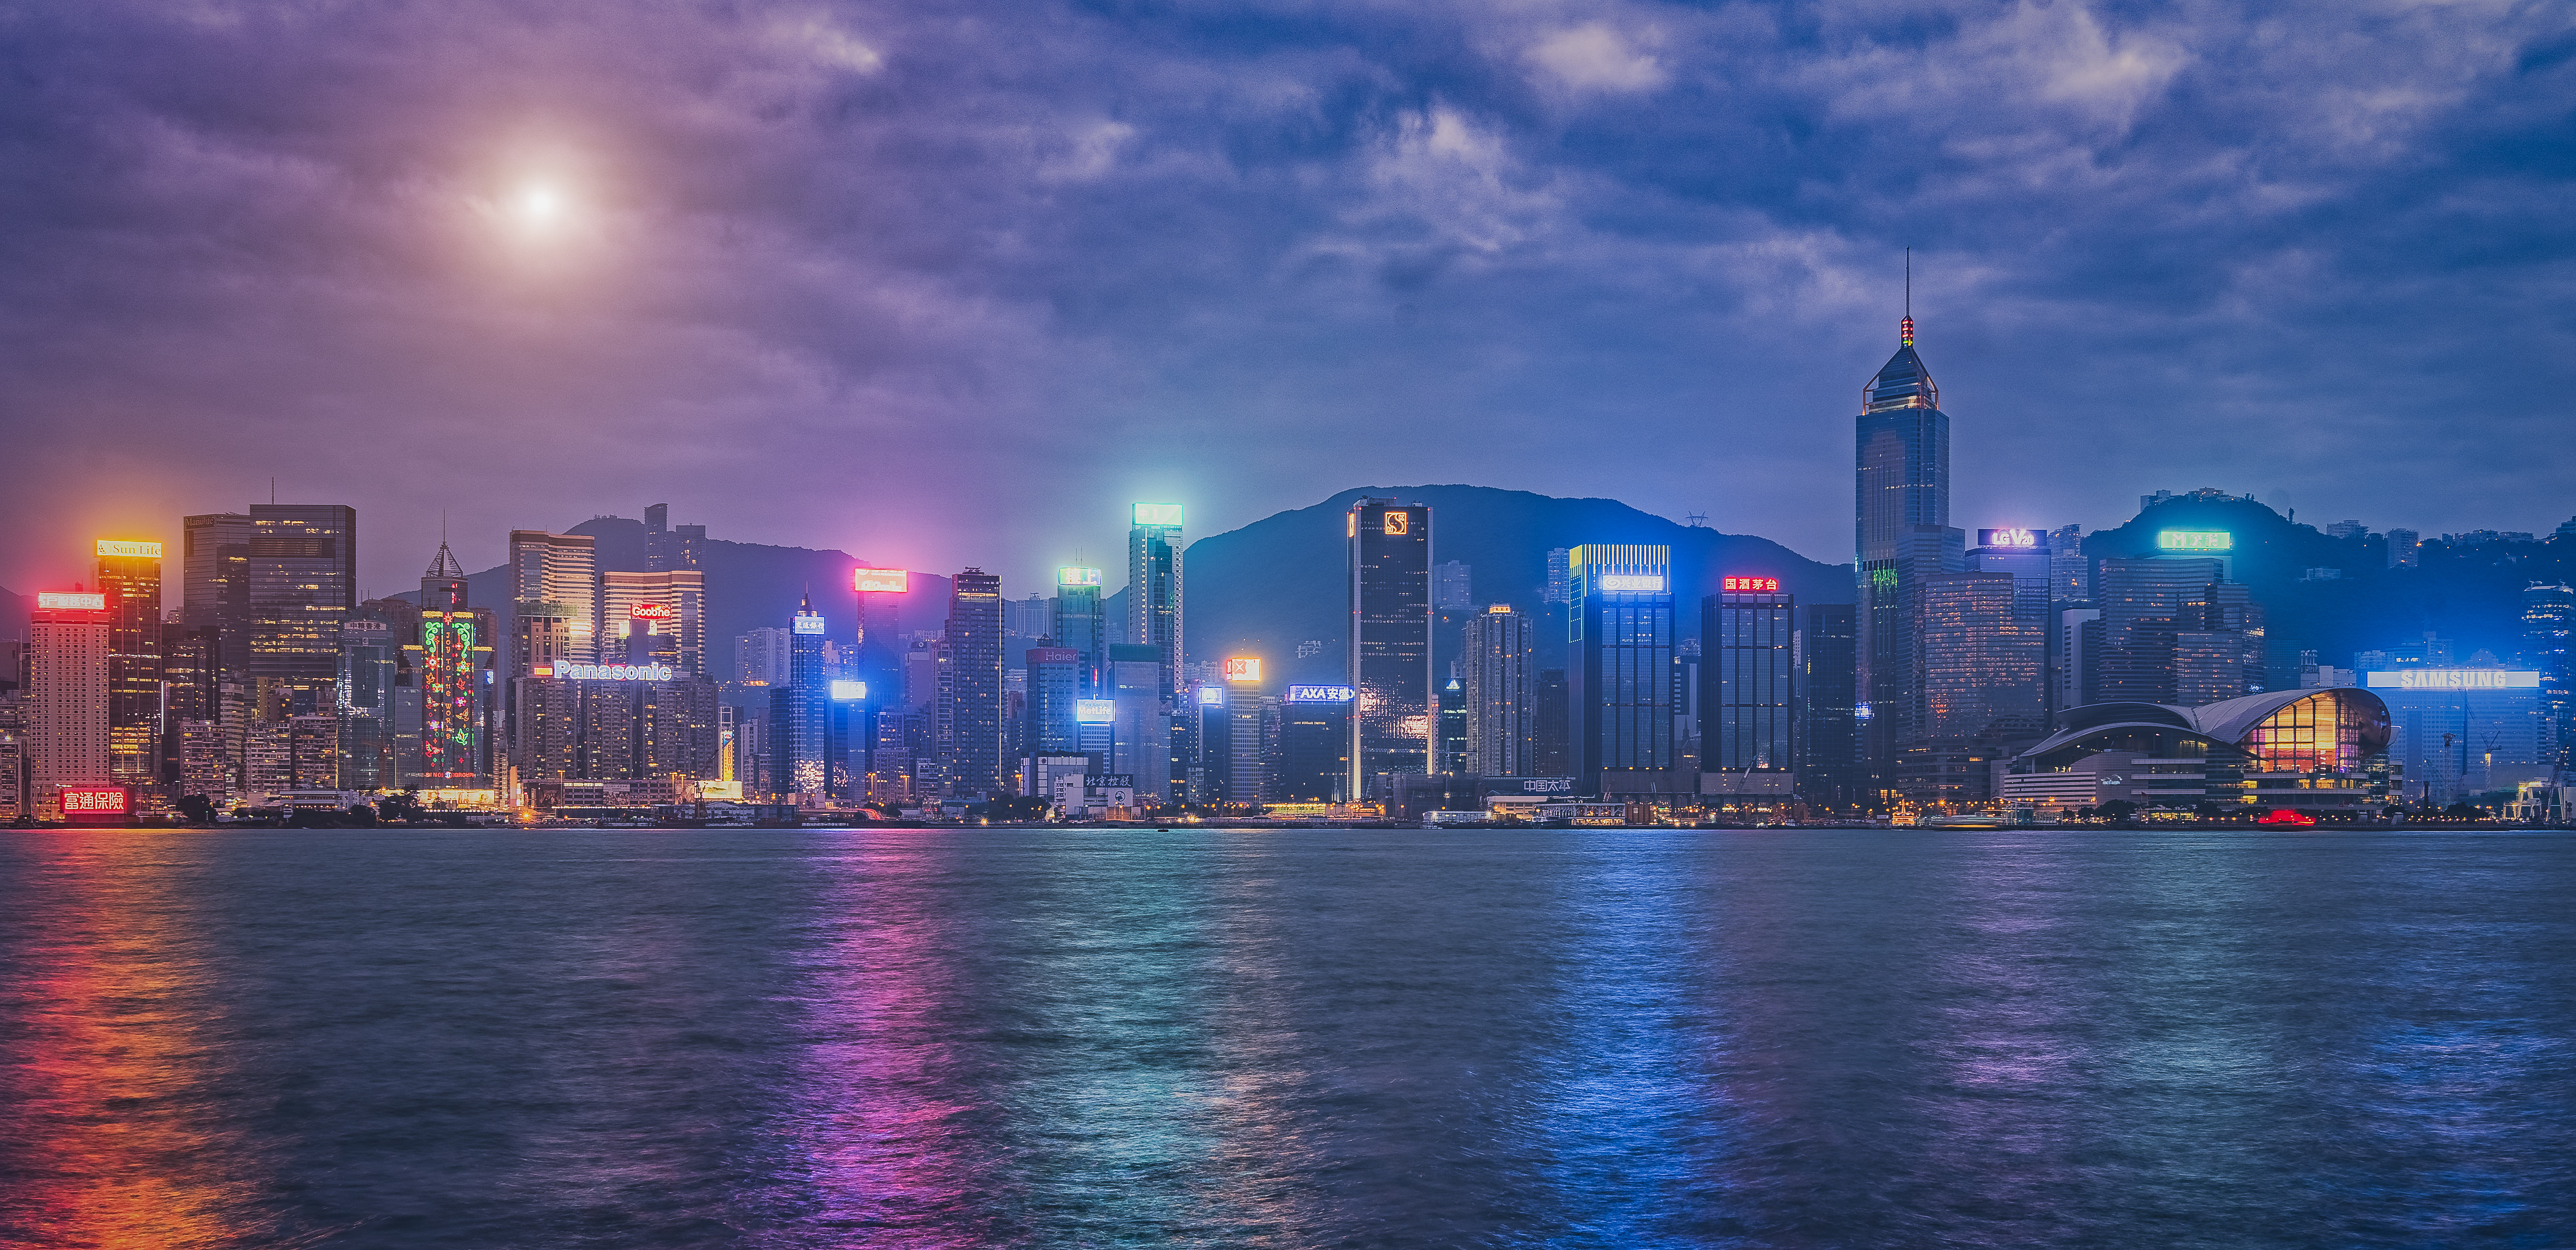 THE PICTURESQUE HONG KONG